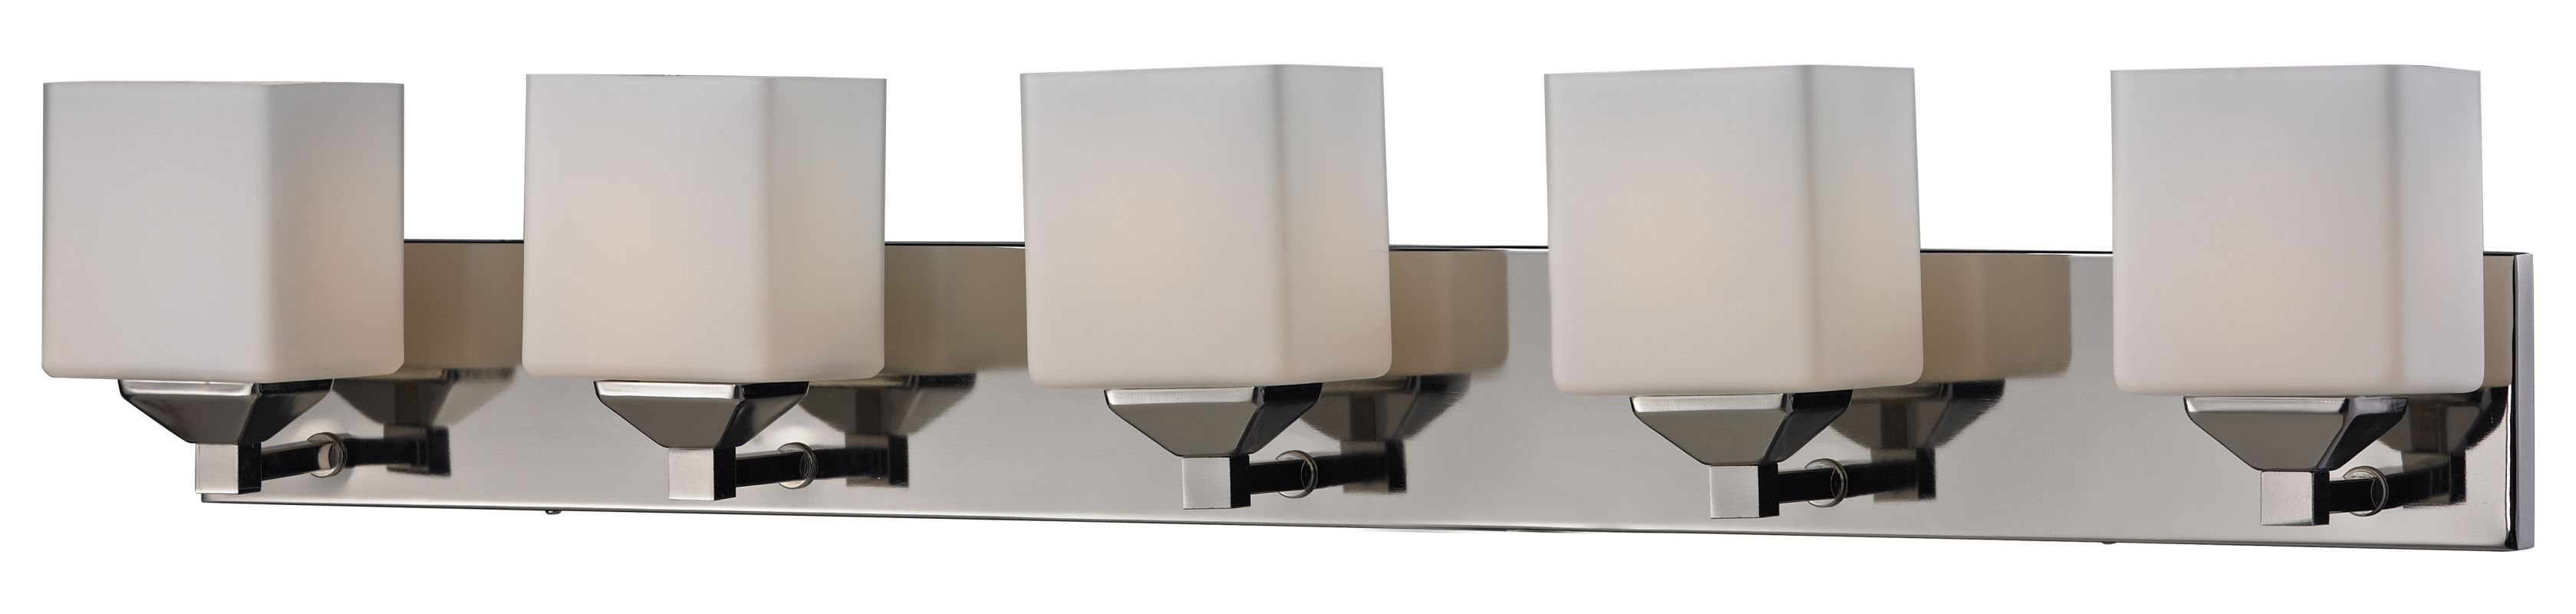 Z-Lite 2105-5V Quube 5 Light Bathroom Vanity Light with Matte Opal Sale $352.00 ITEM: bci2219664 ID#:2105-5V UPC: 685659022360 :